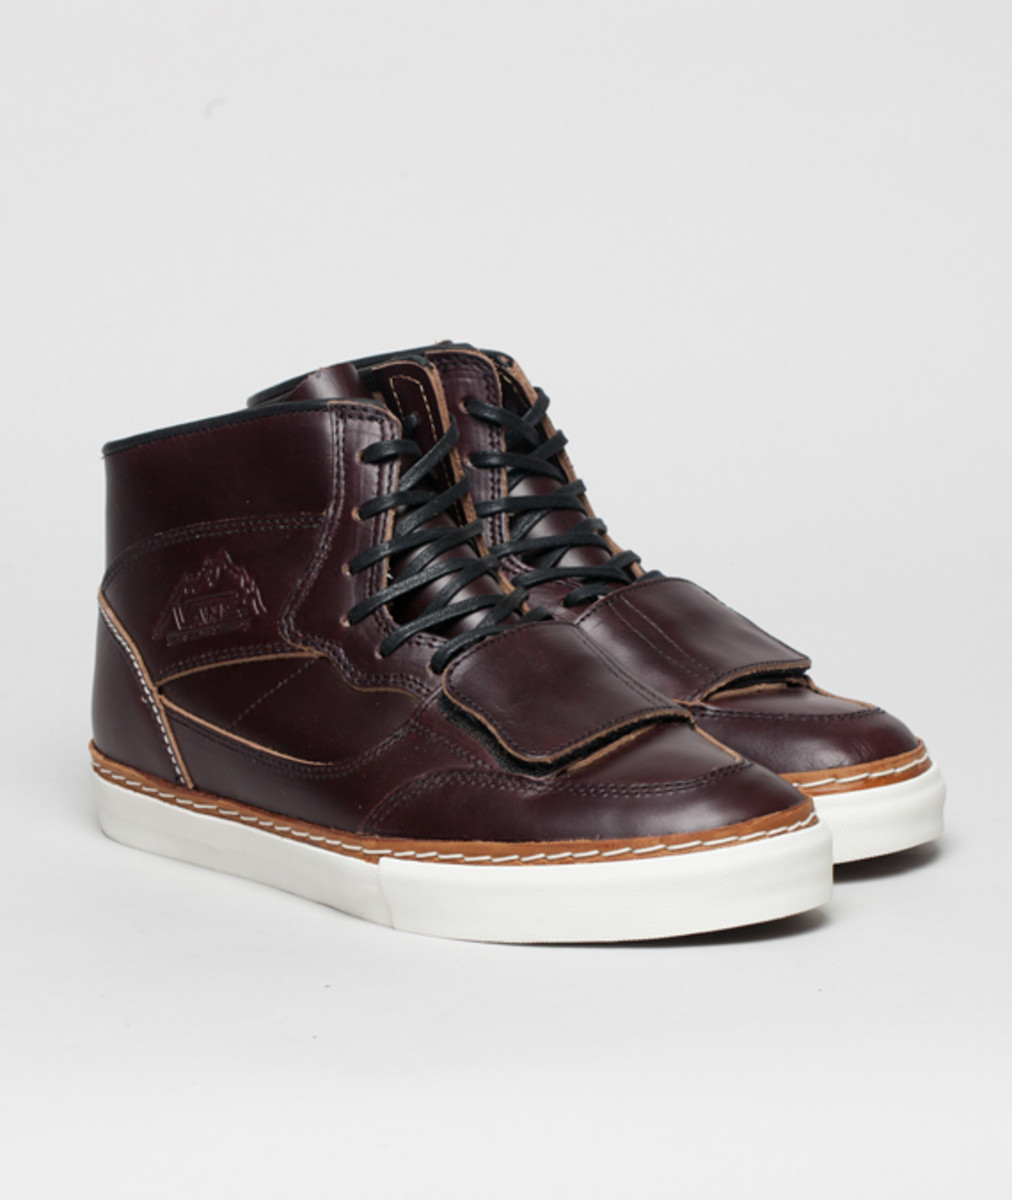 horween-leather-vans-mt-edition-decon-lx-01